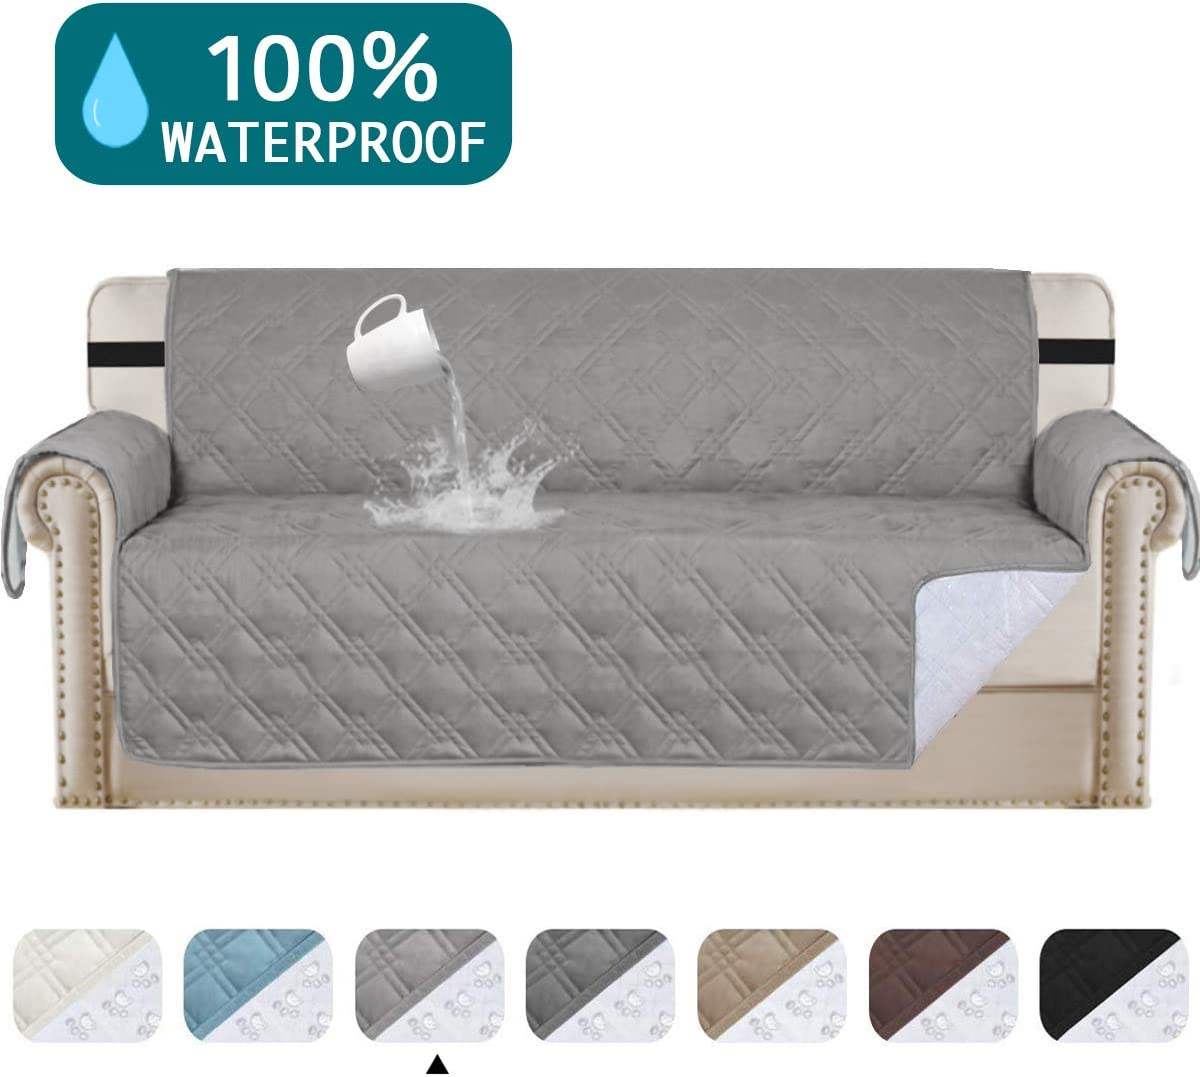 "Turquoize Waterproof Sofa Slipcover Oversized Sofa Cover for Living Room Non-Slip Couch Covers for Dogs Pet Quilted Furniture Covers Washable Protects from Kids, Dogs, Cats(Oversize Sofa 78"",Dove)"